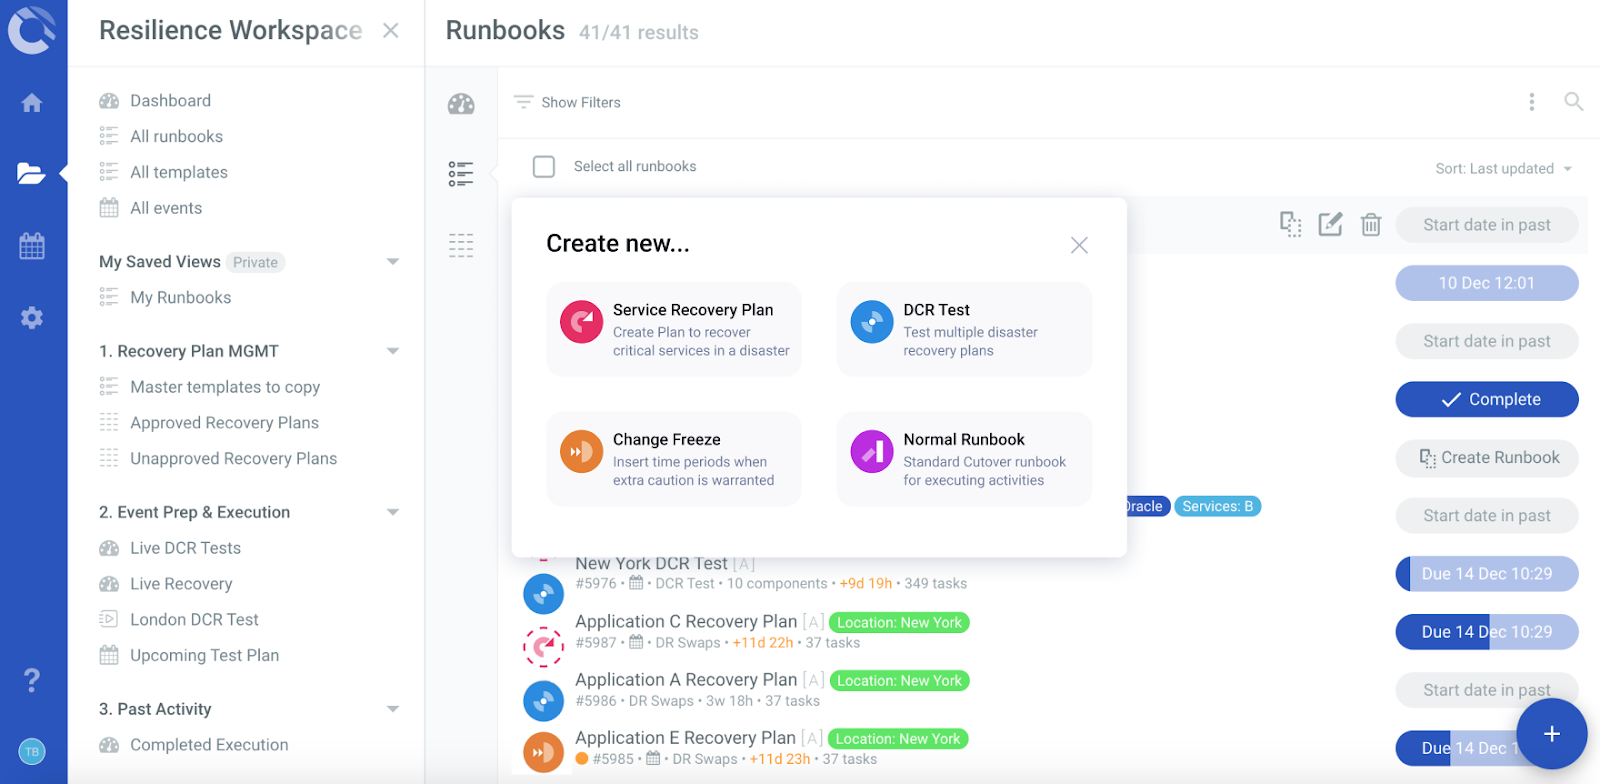 templated resilience runbooks